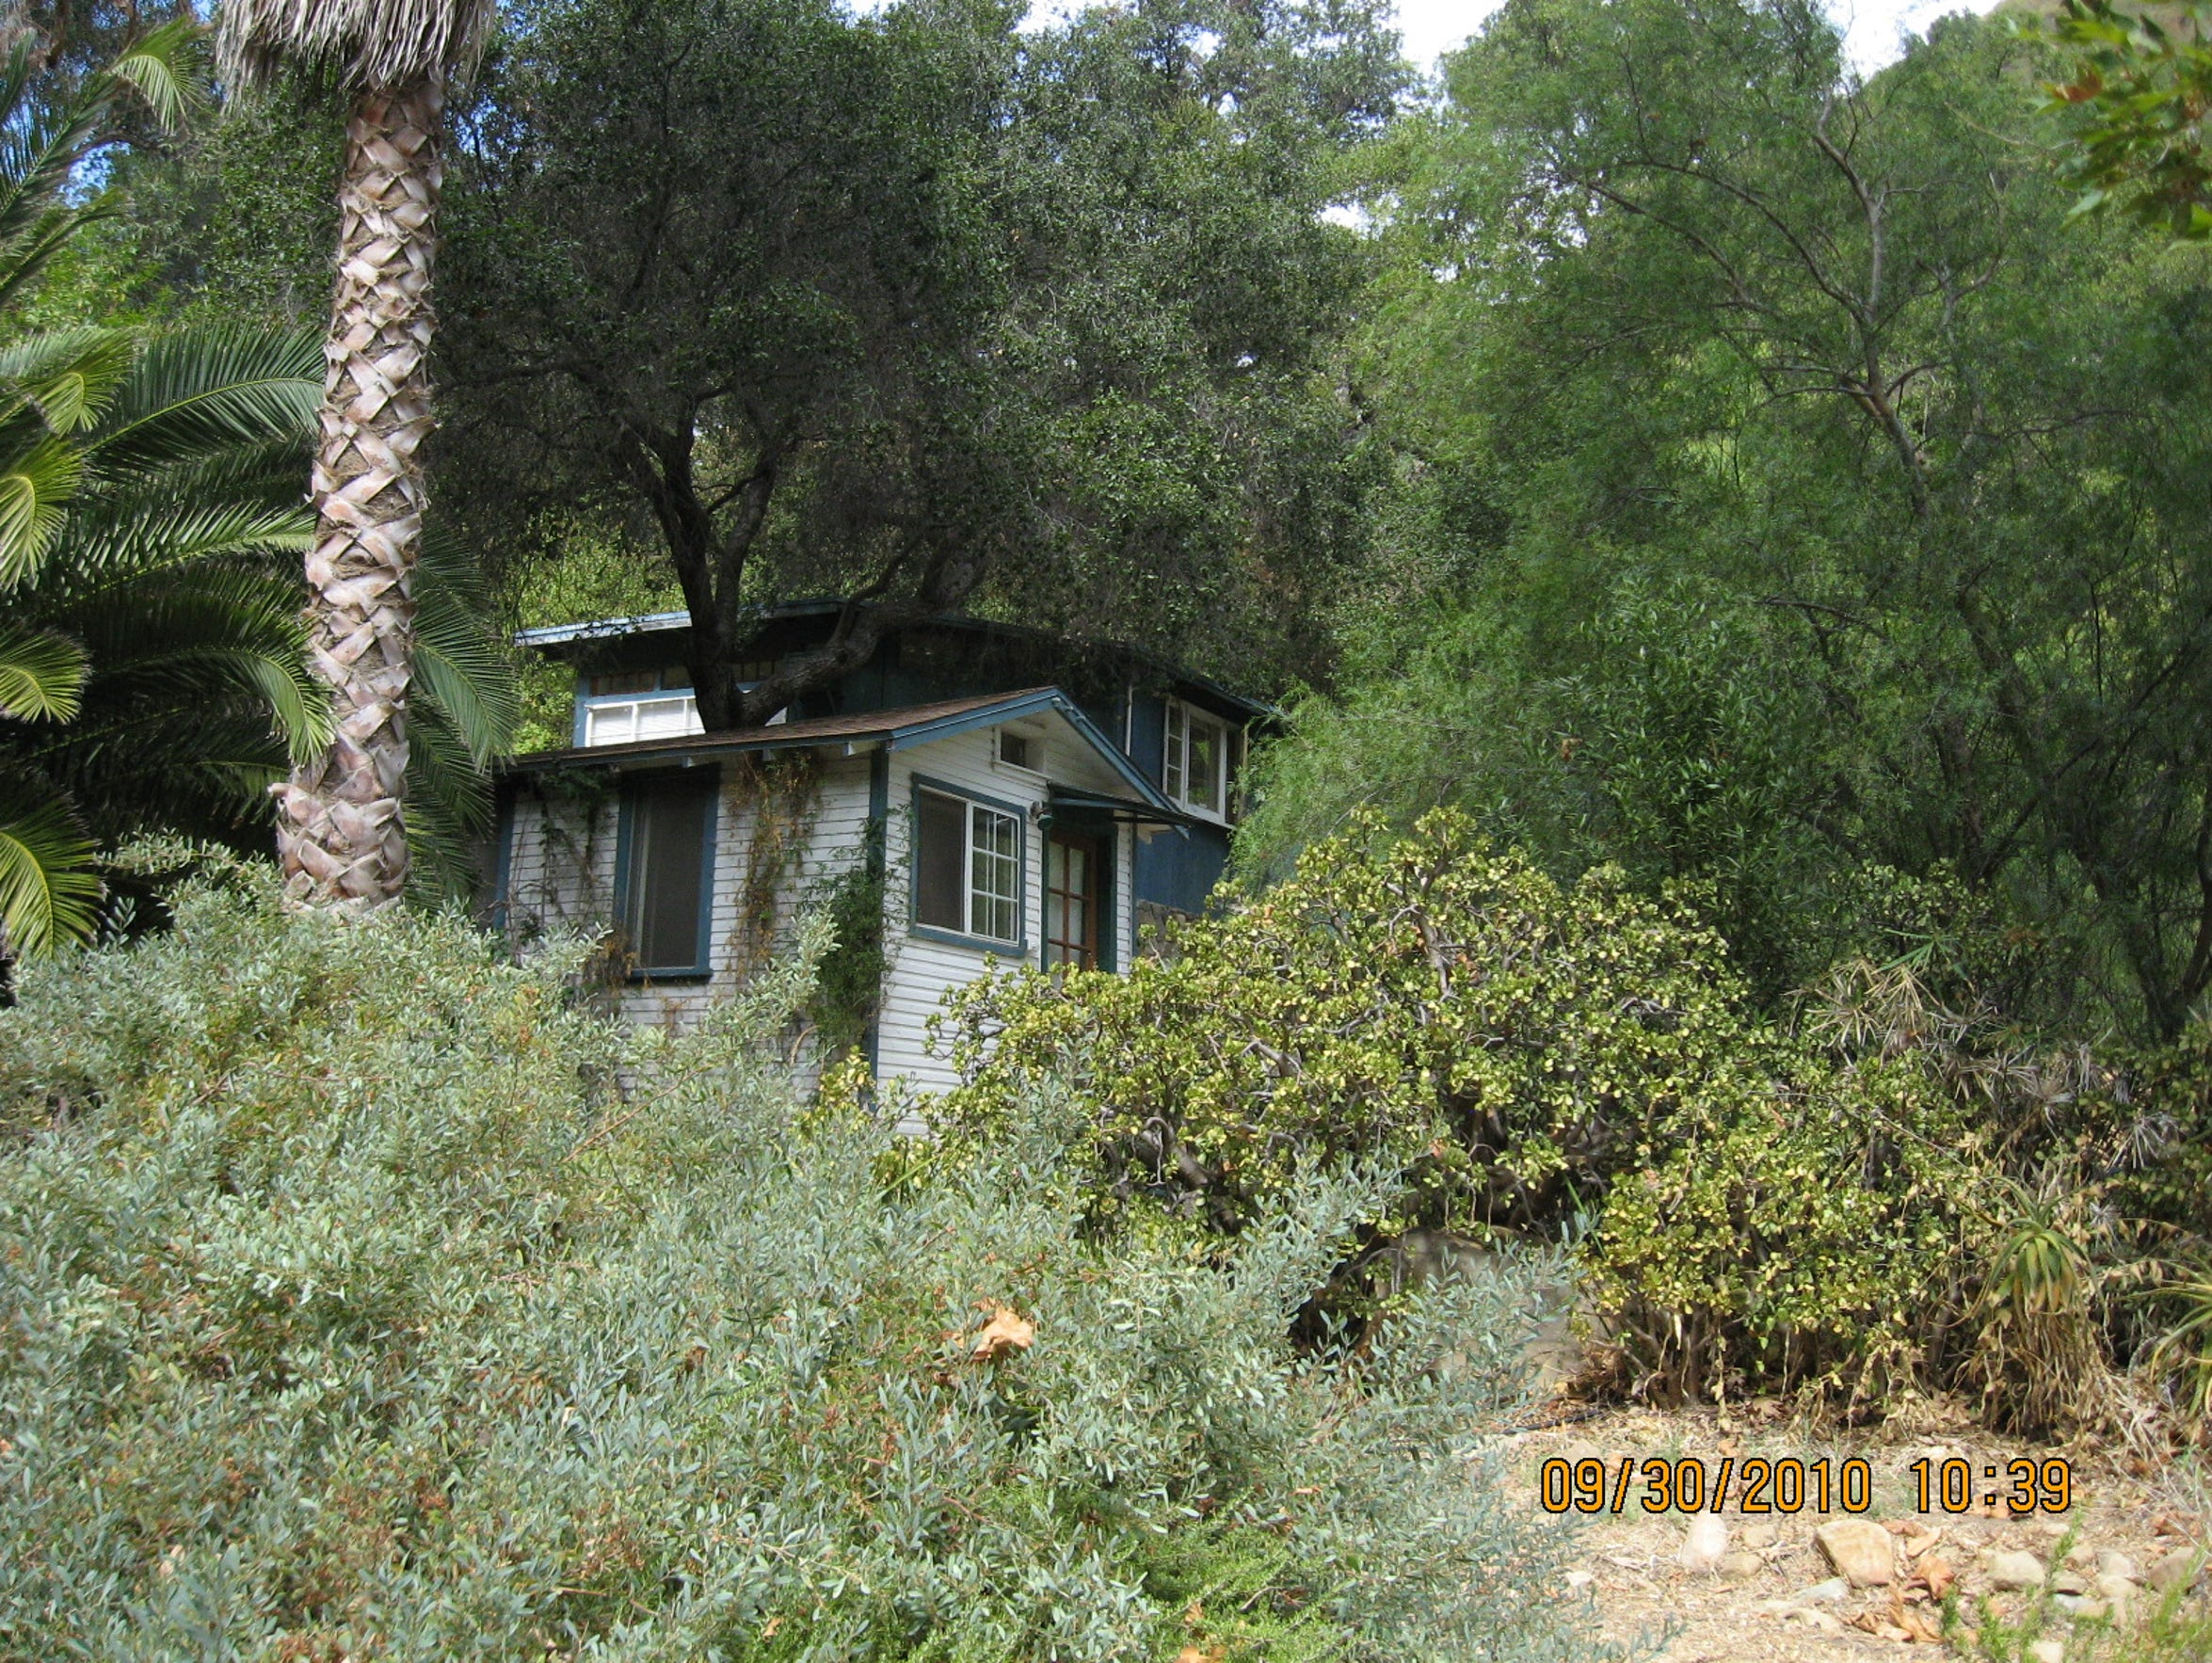 Trees shade cabins on the Matilija Hot Springs property in this photograph dated in 2010.